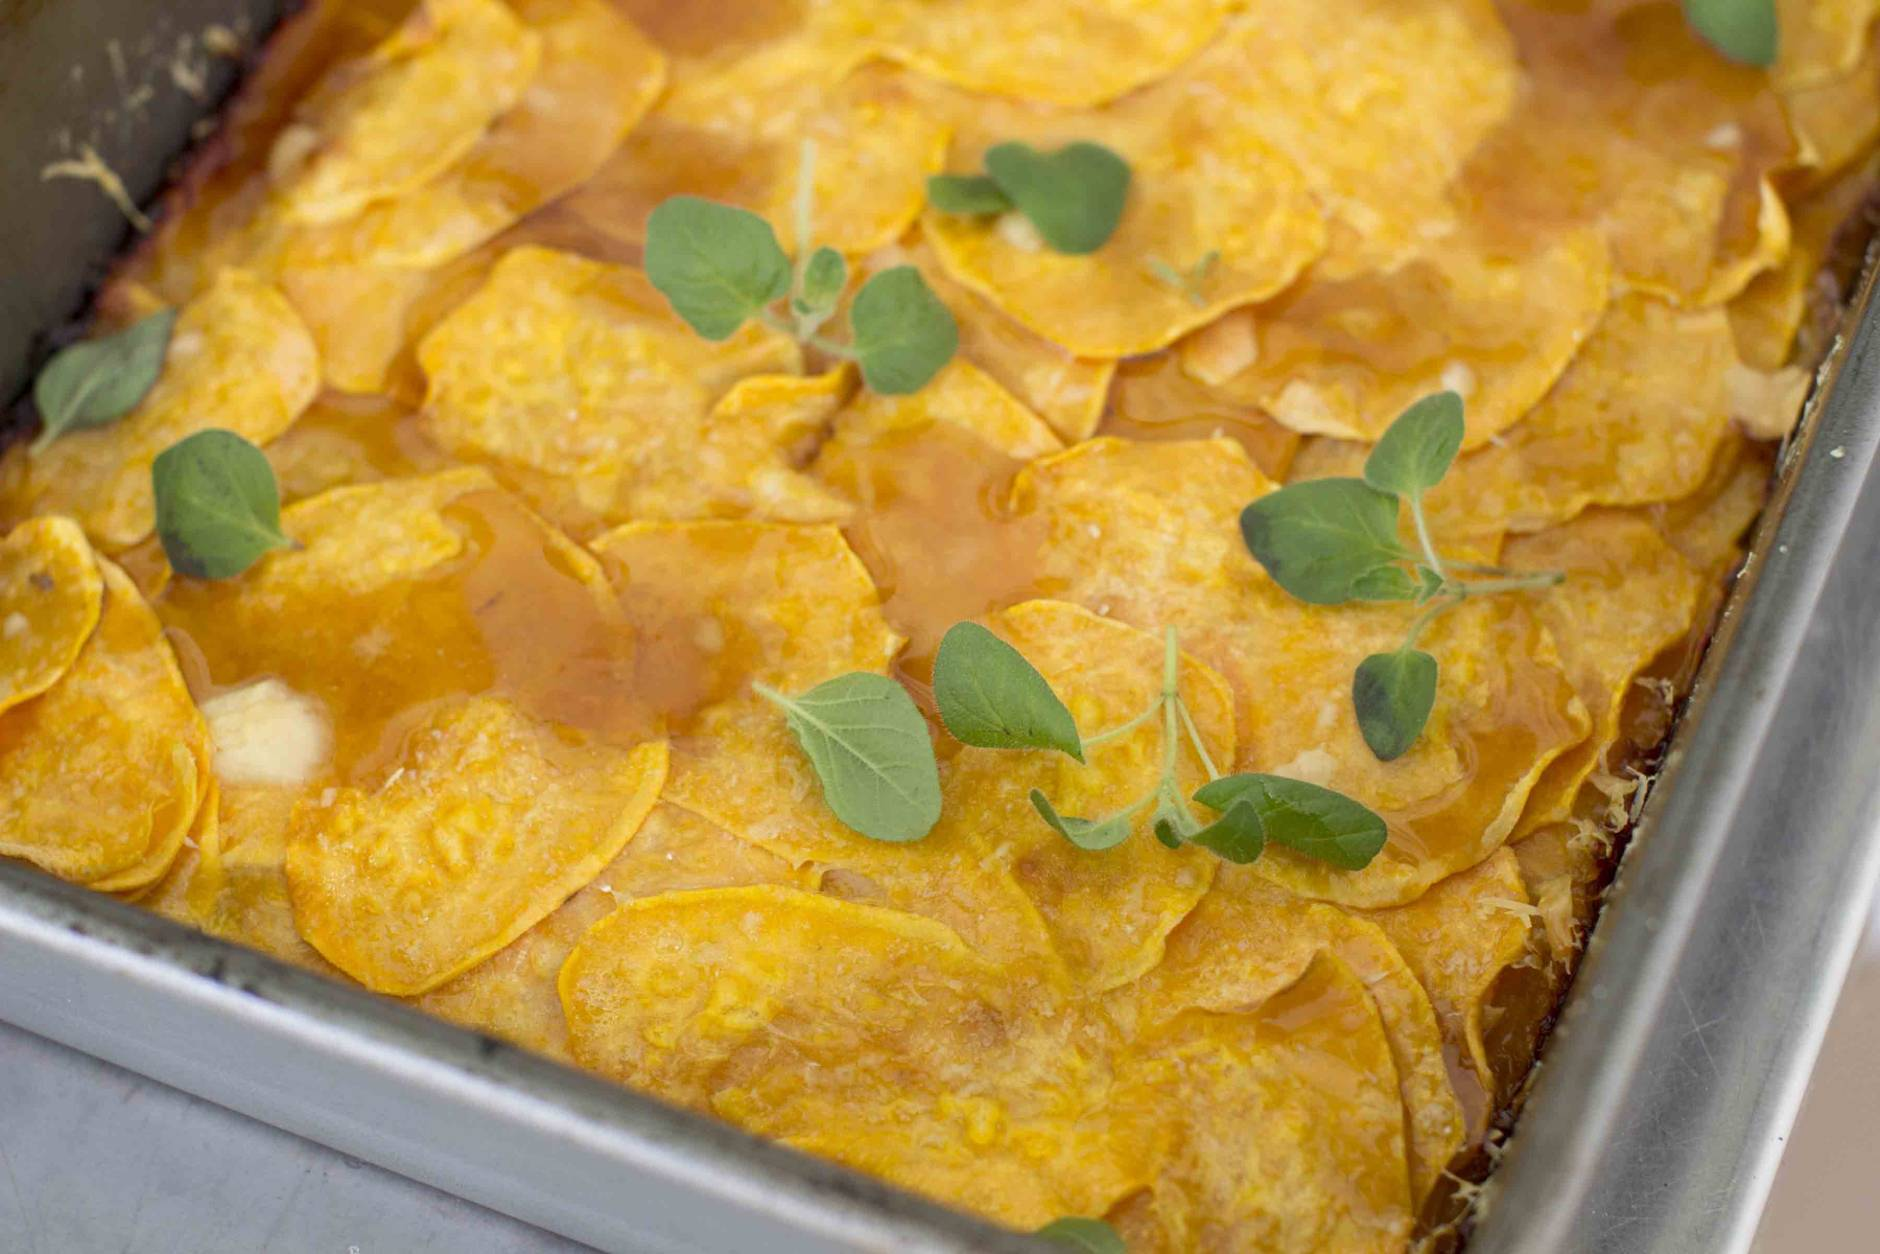 This Oct. 20, 2014, photo shows sweet potato tart with Parmesan and maple syrup in Concord, N.H. No matter how classic or traditional they may be, sweet potatoes can be a bit of a challenge to serve at Thanksgiving. (AP Photo/Matthew Mead)